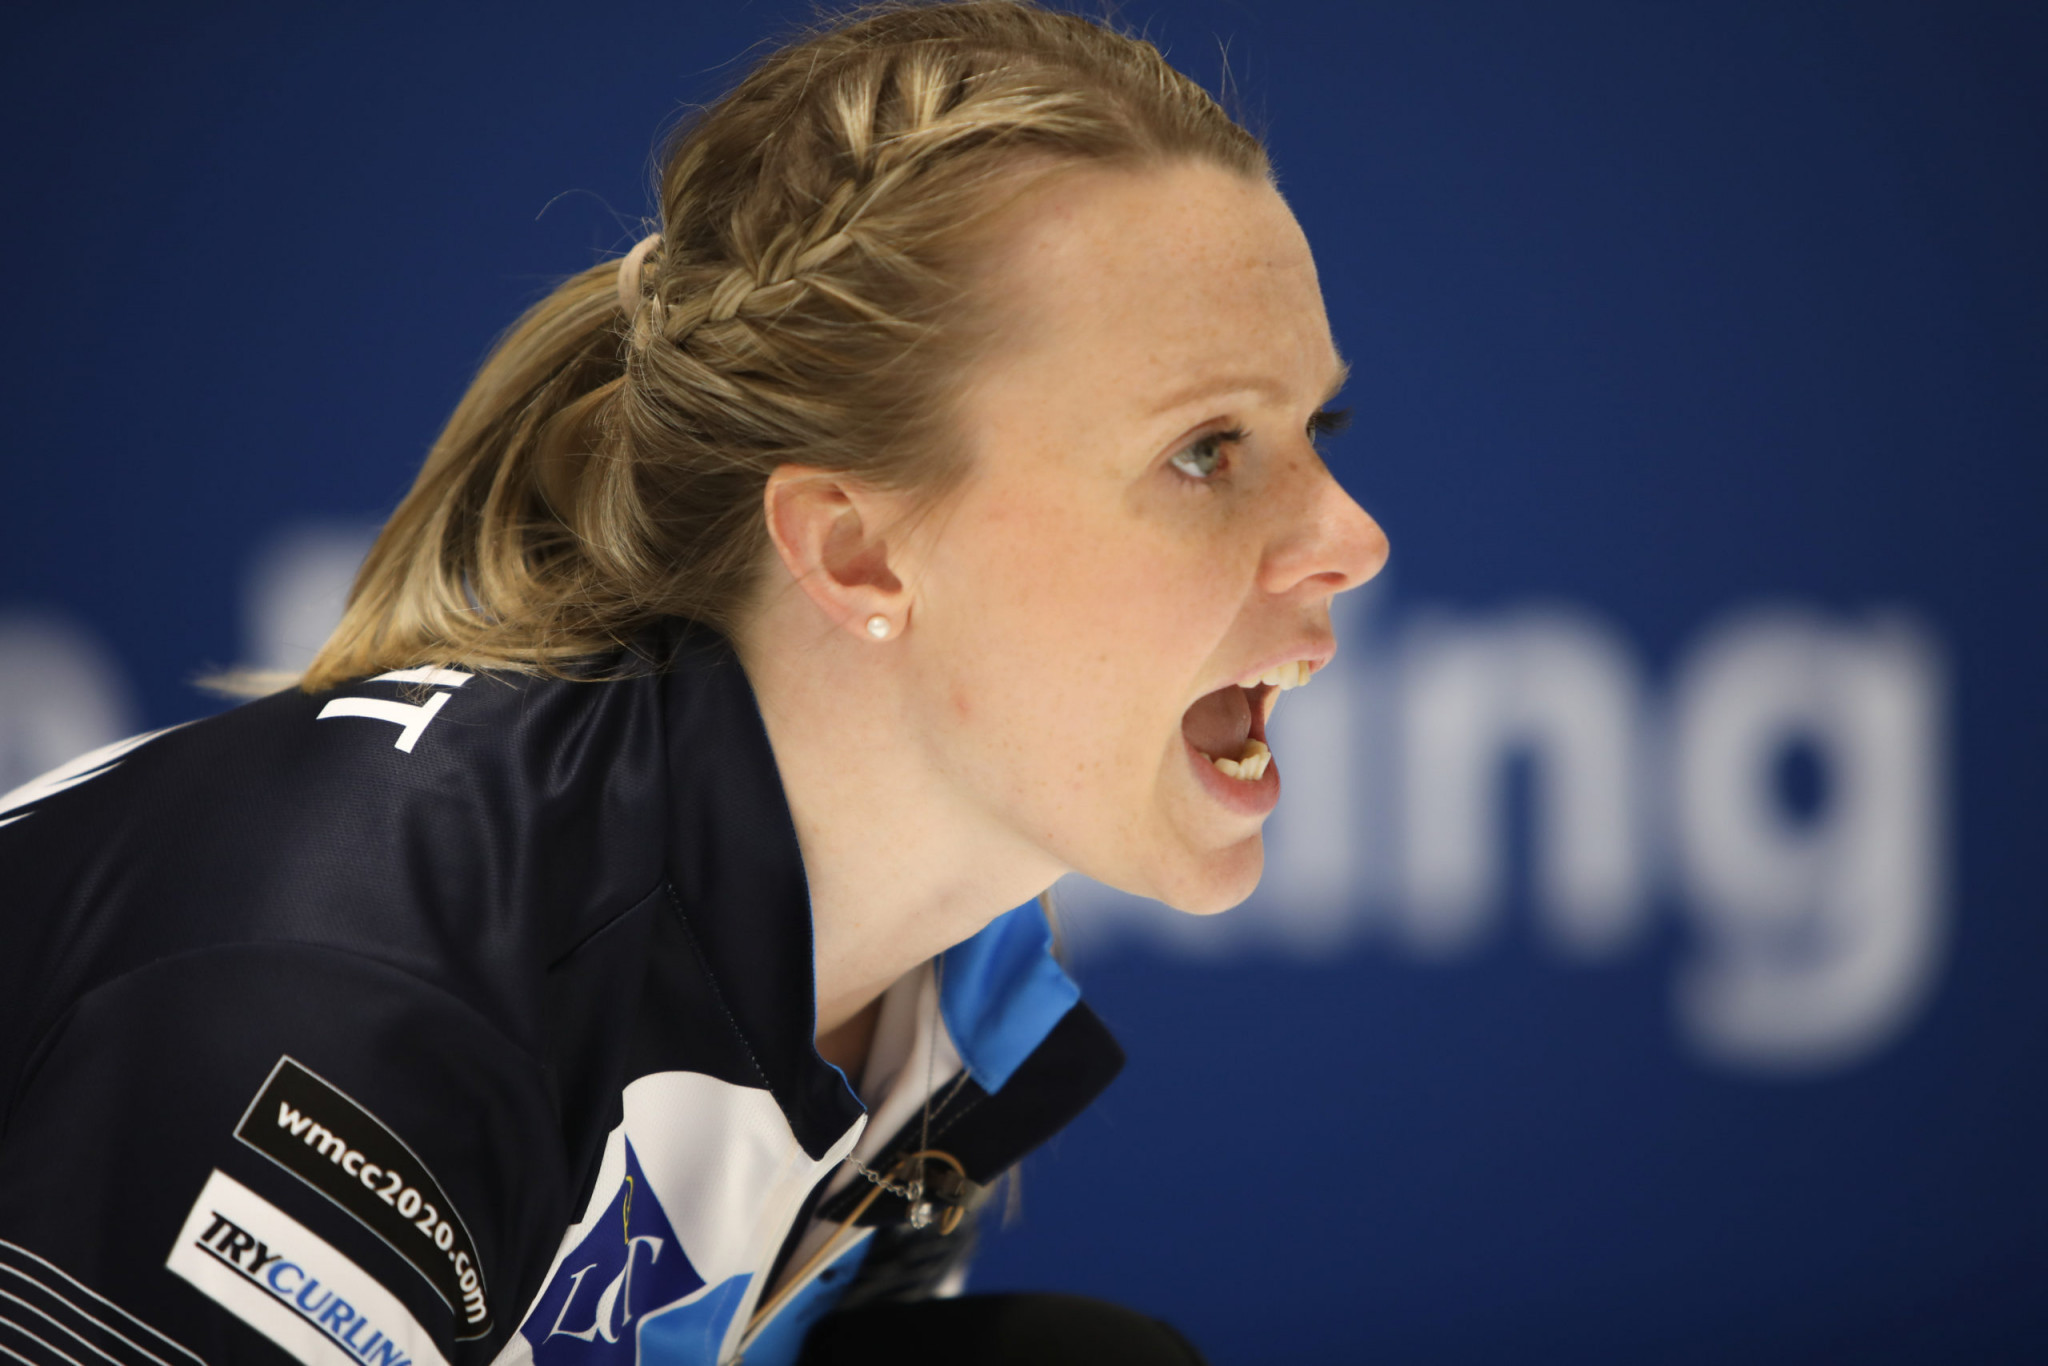 European curling medallist stops playing to treat patients during COVID-19 crisis